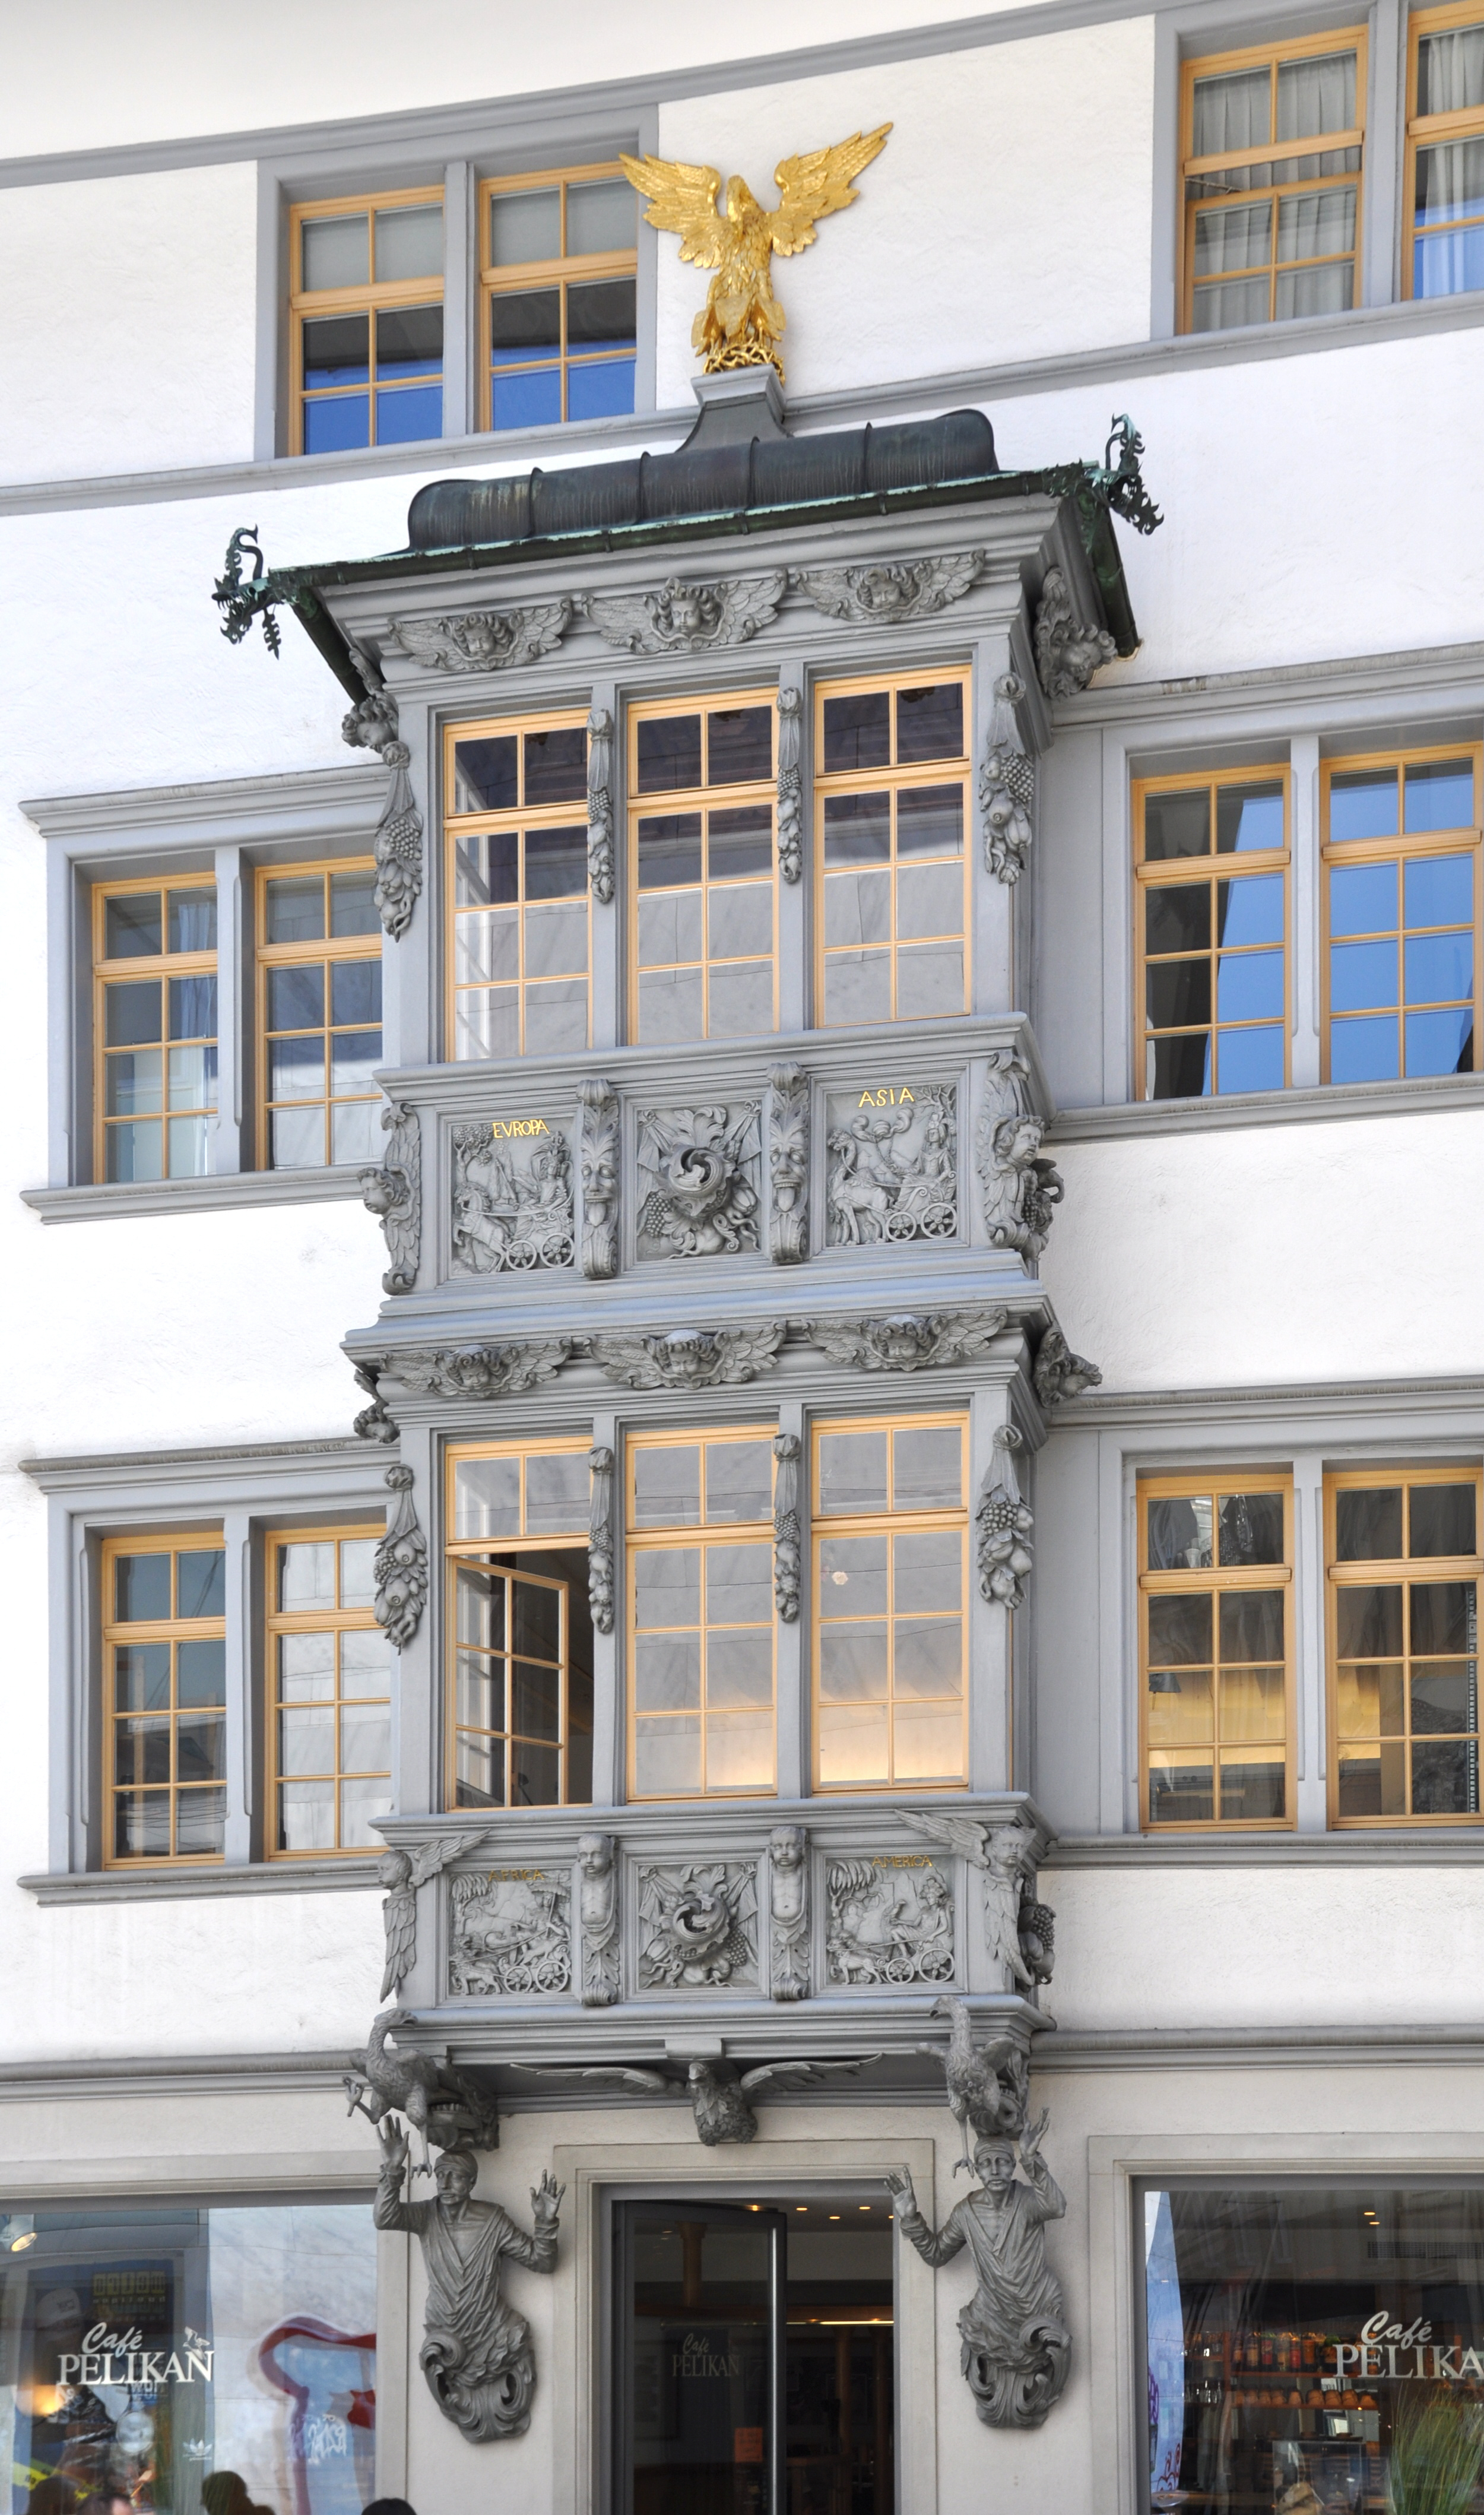 file st gallen haus zum pelikan wikimedia commons. Black Bedroom Furniture Sets. Home Design Ideas